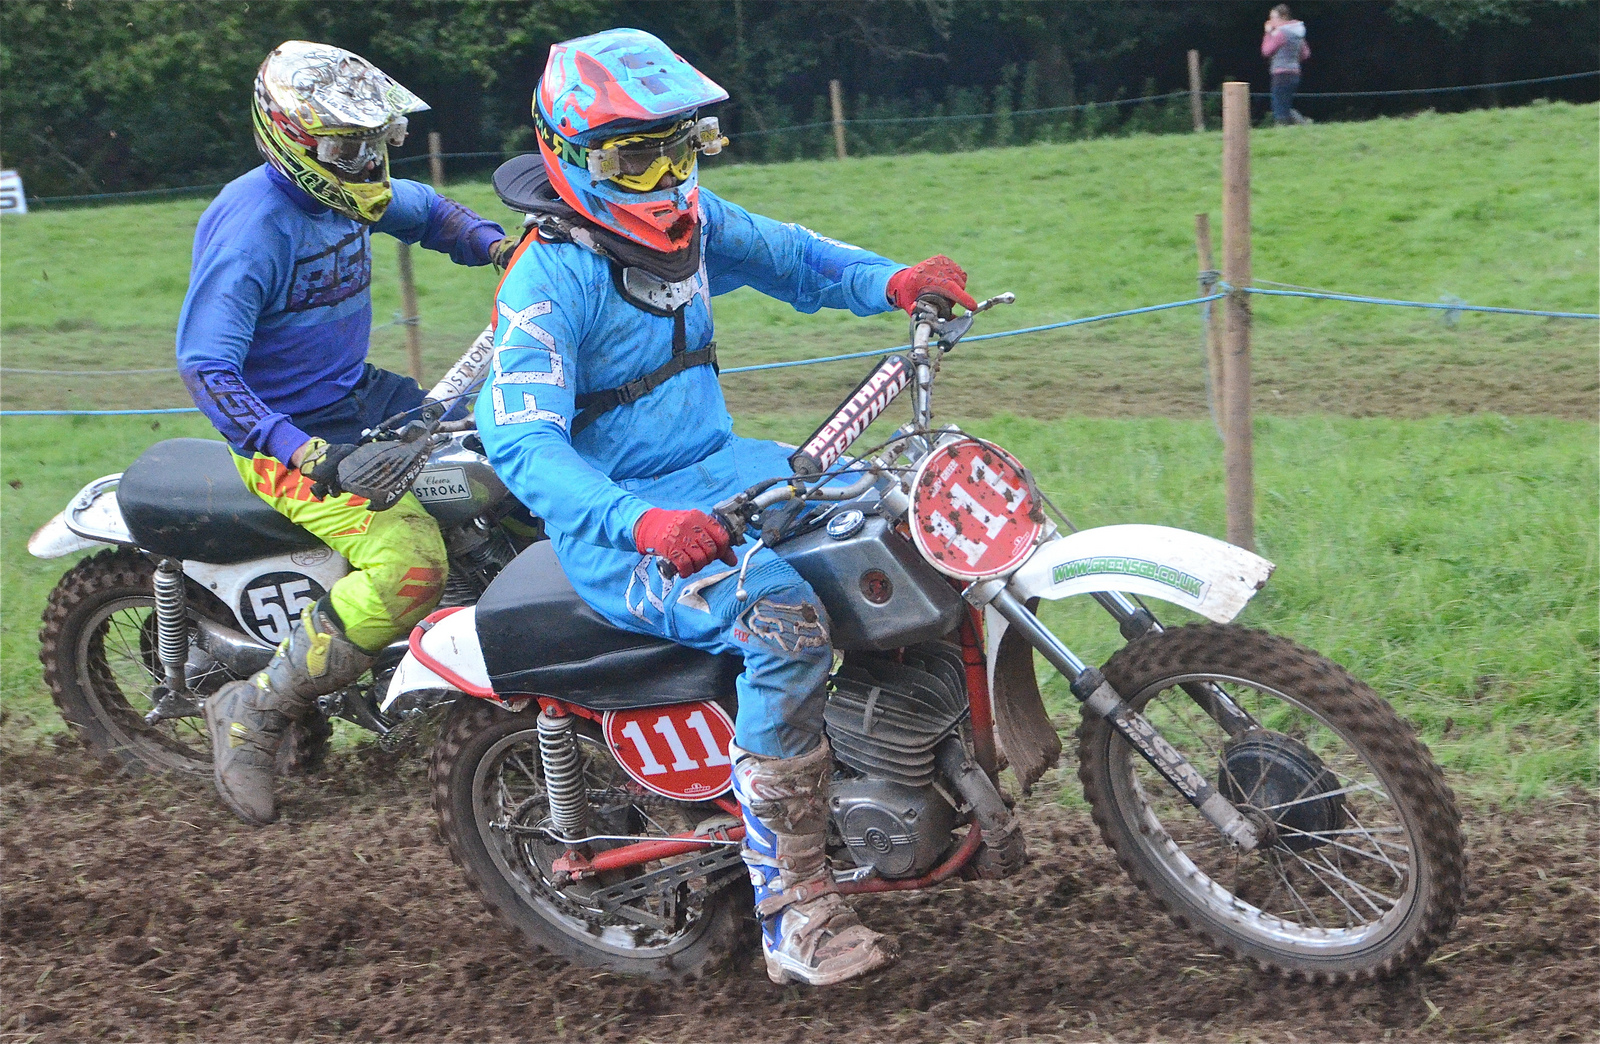 Llanthony Classic Scramble Photos September 2015 classicdirtbikerider.com..34